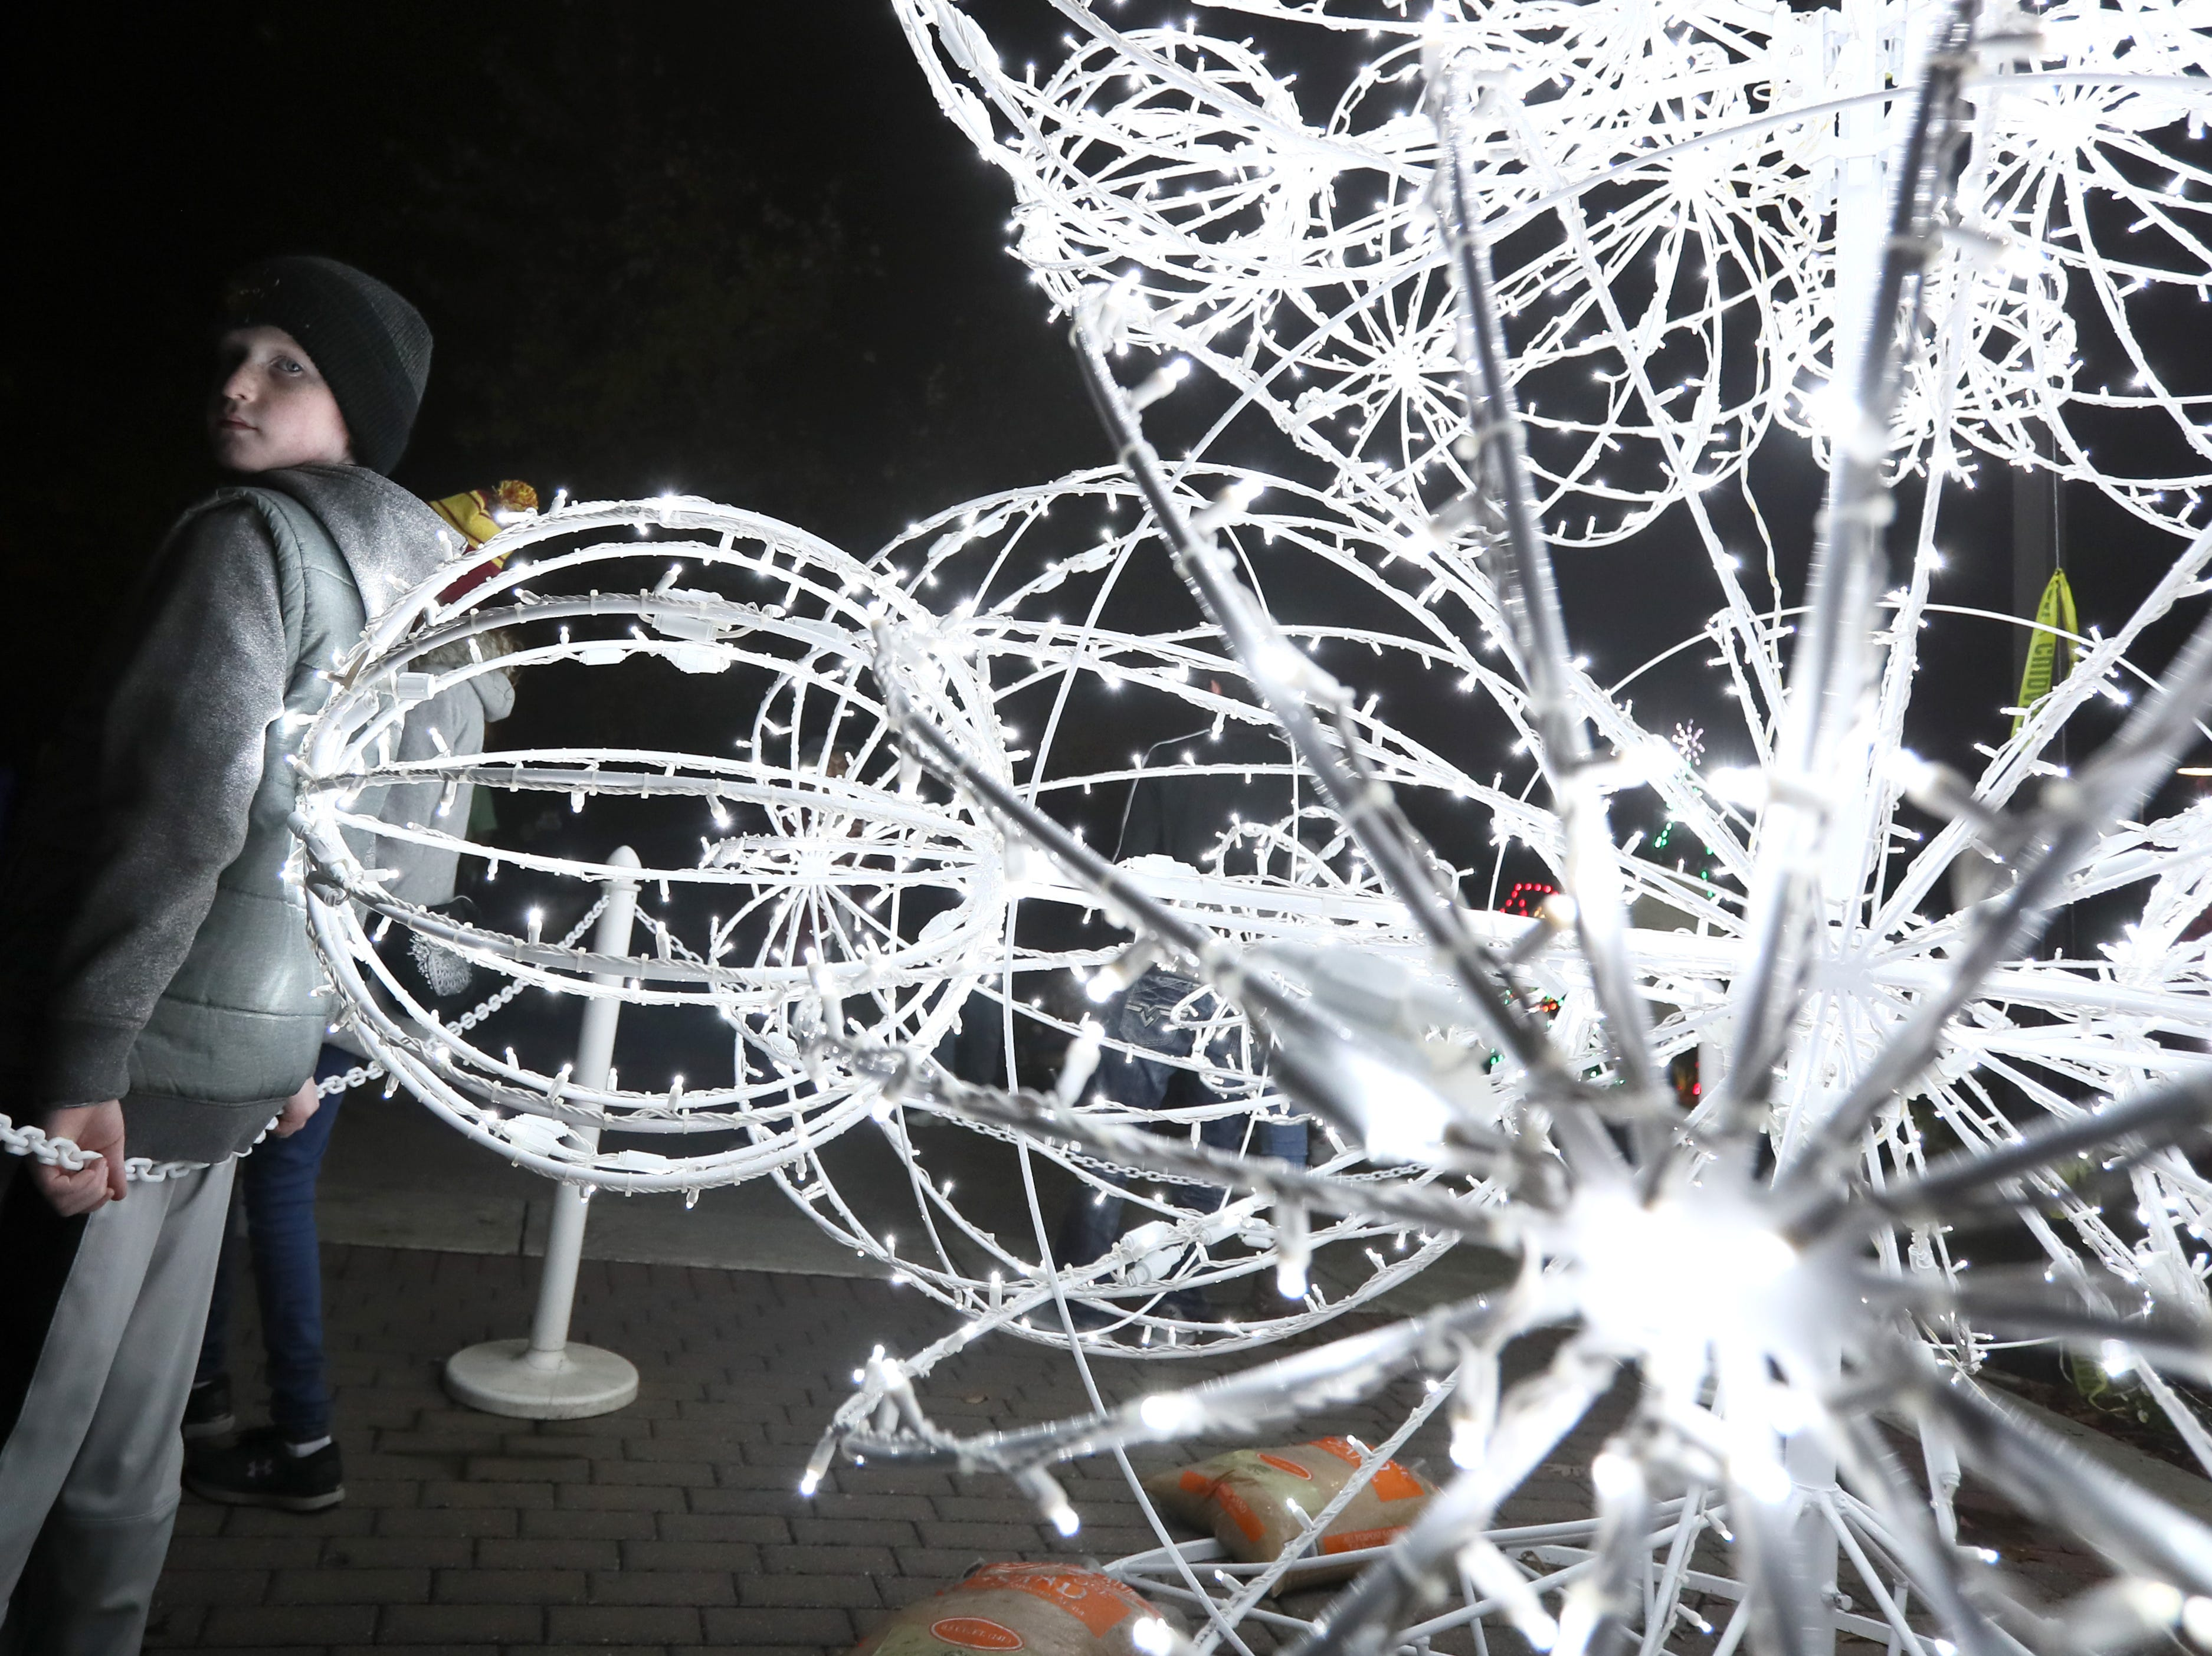 Chris Pannell, 10, stands next to a lit scuplture during Zoo Lights, a holiday season themed event at the Memphis Zoo Saturday, Nov. 24, 2018.